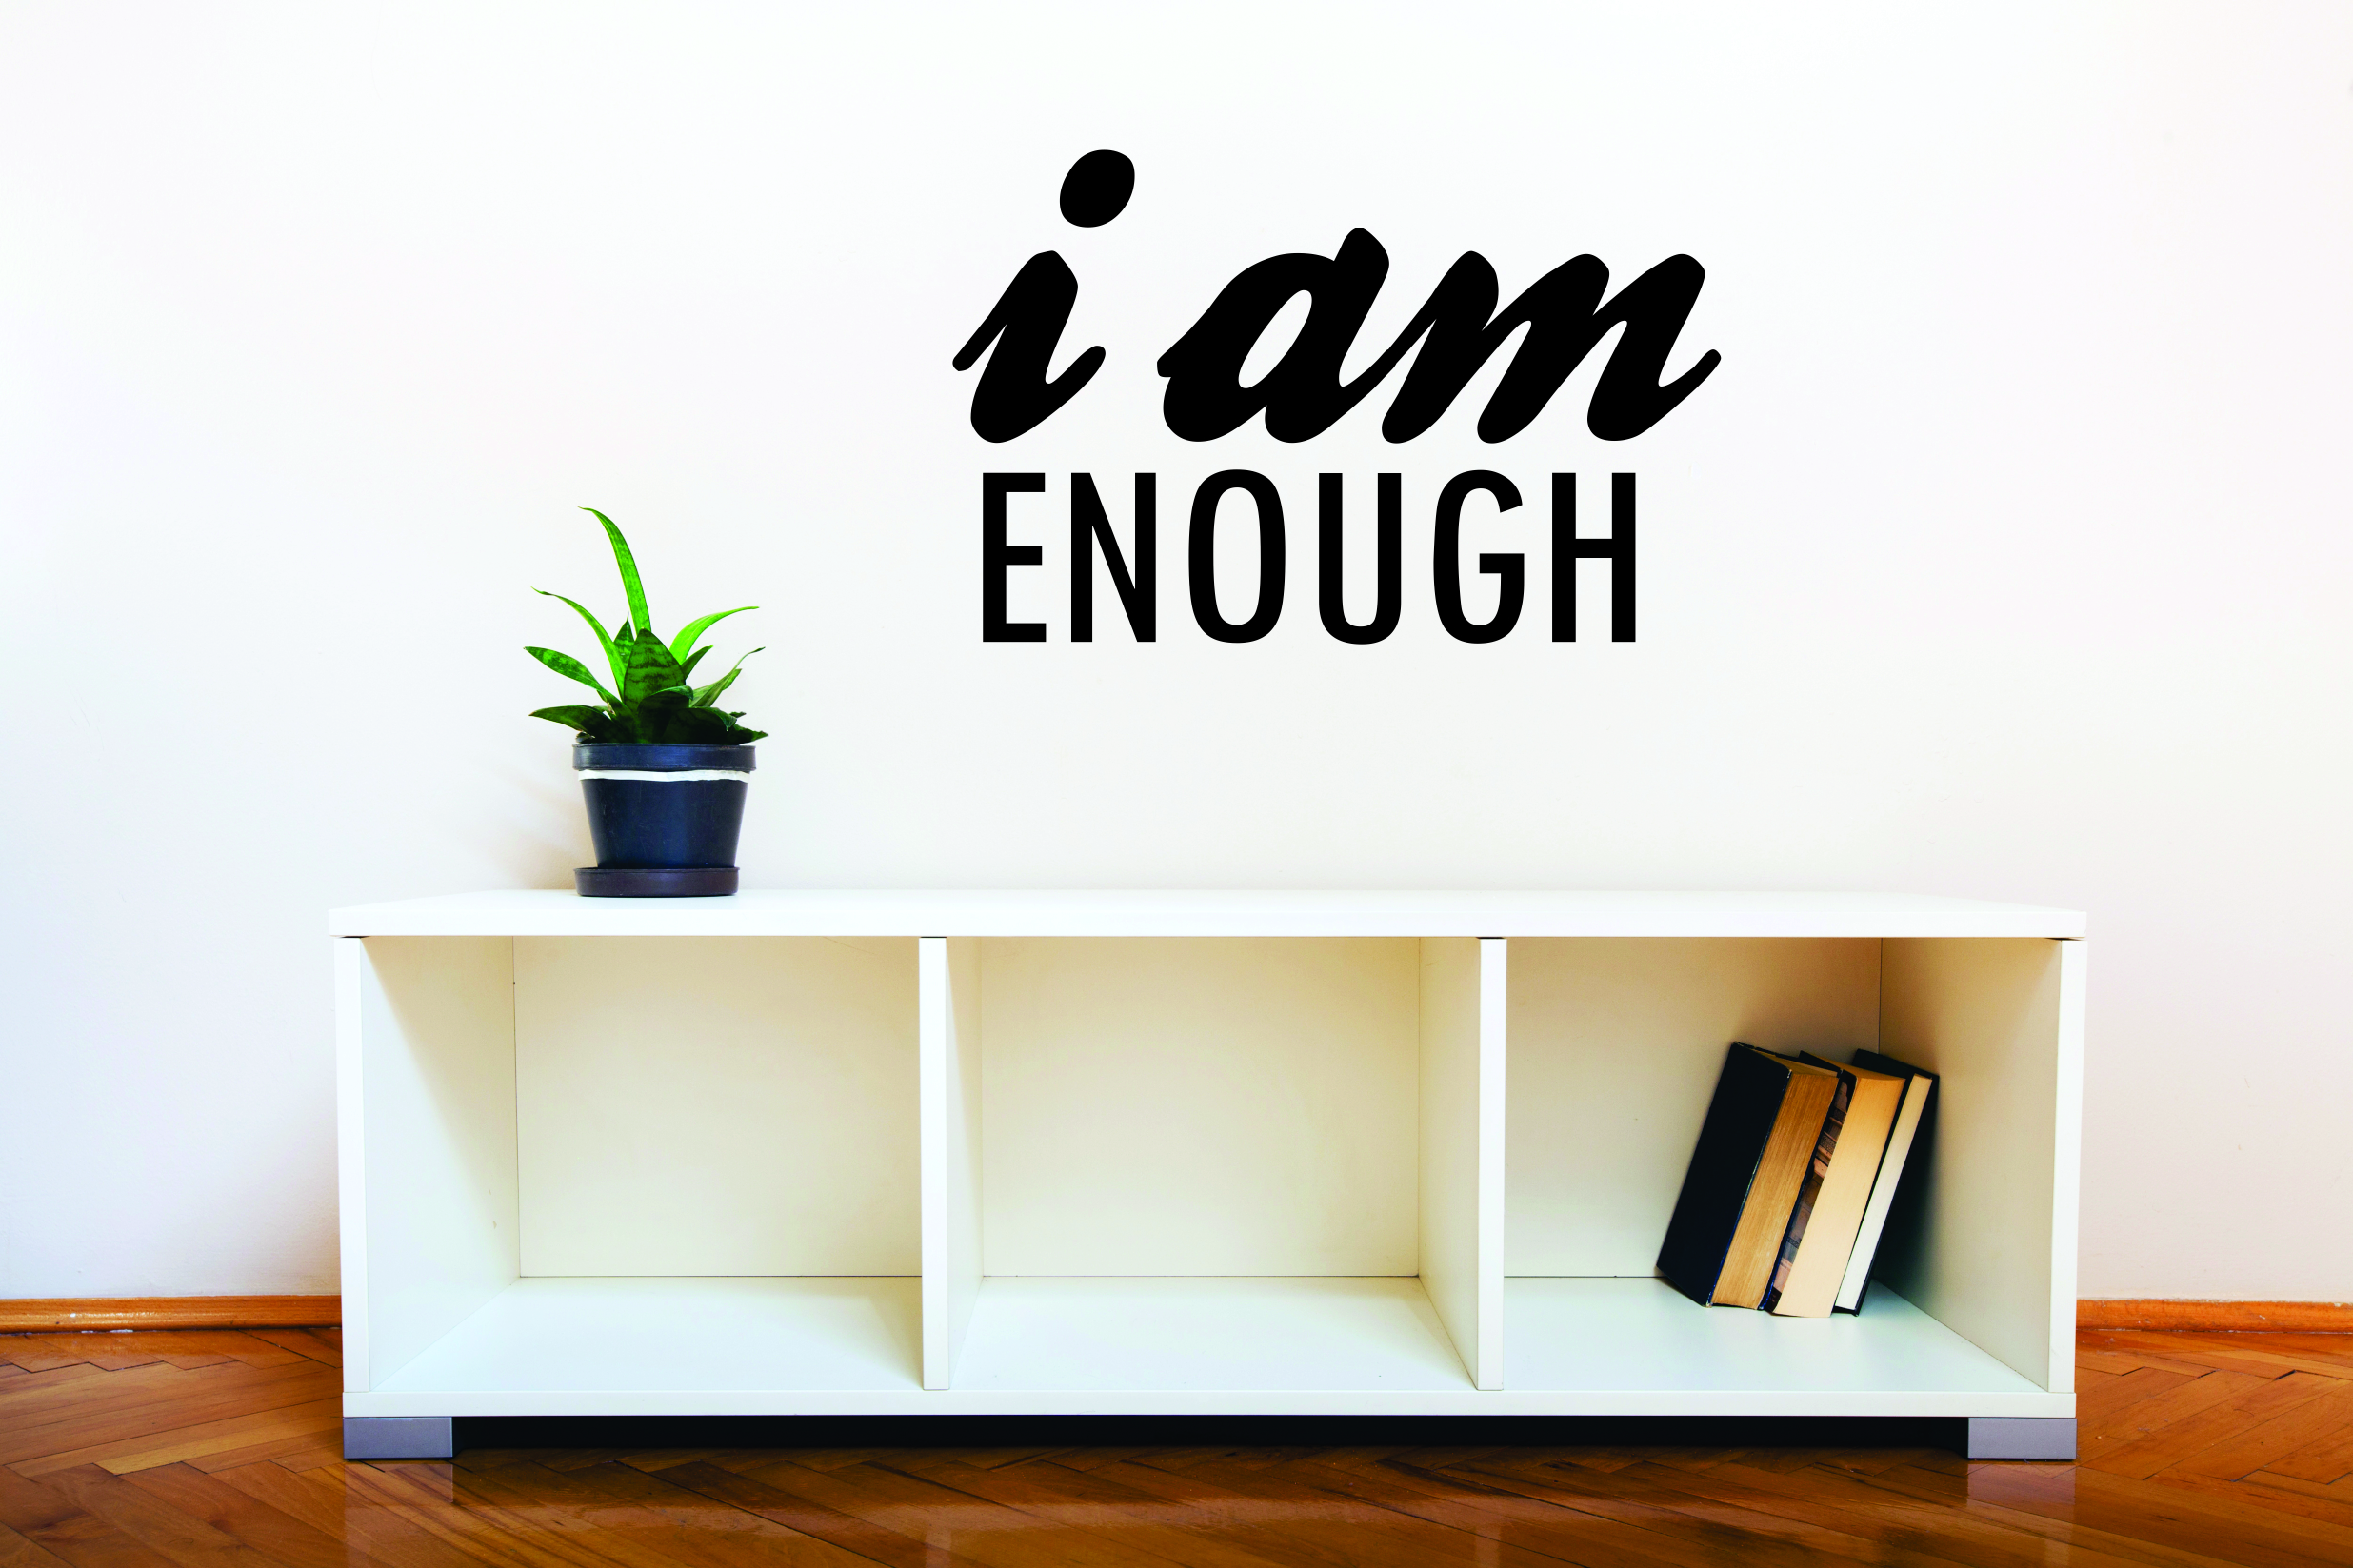 The Kids Are Enough How Inspiring Wall Decal Quotes Can Promote - Inspiring wall decals